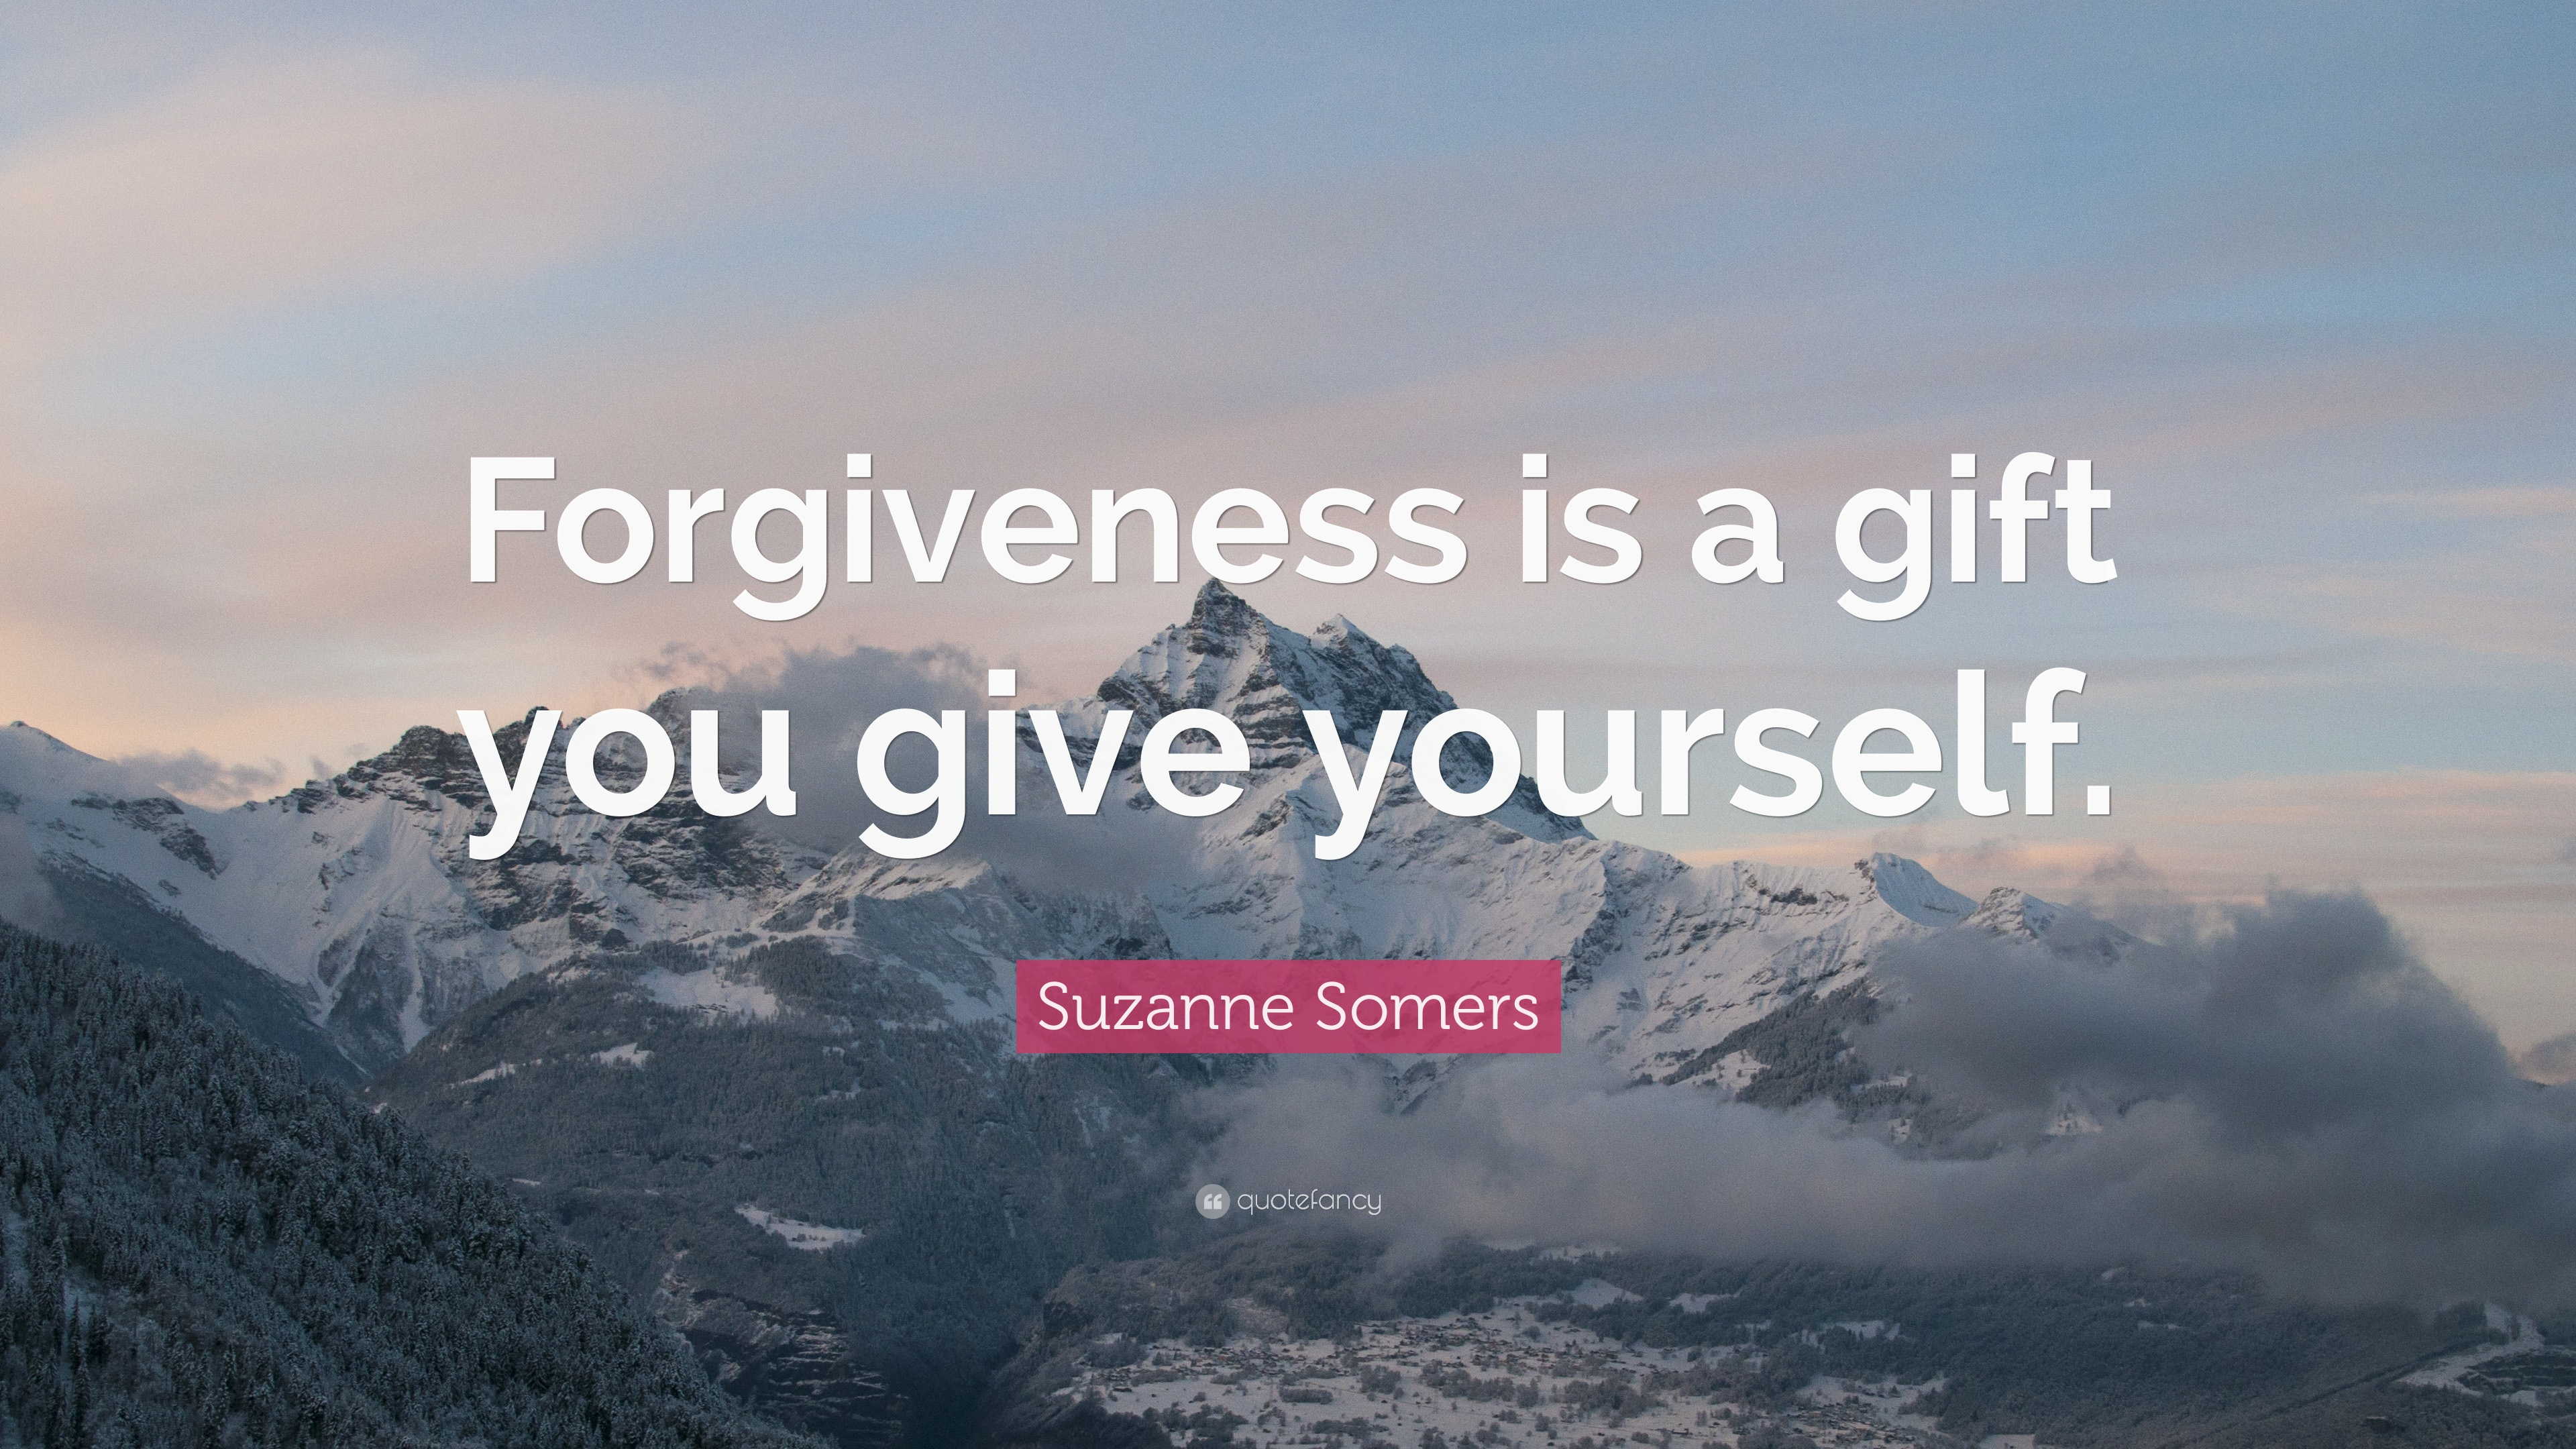 Quotes On Forgiveness Prepossessing Forgiveness Quotes 40 Wallpapers  Quotefancy